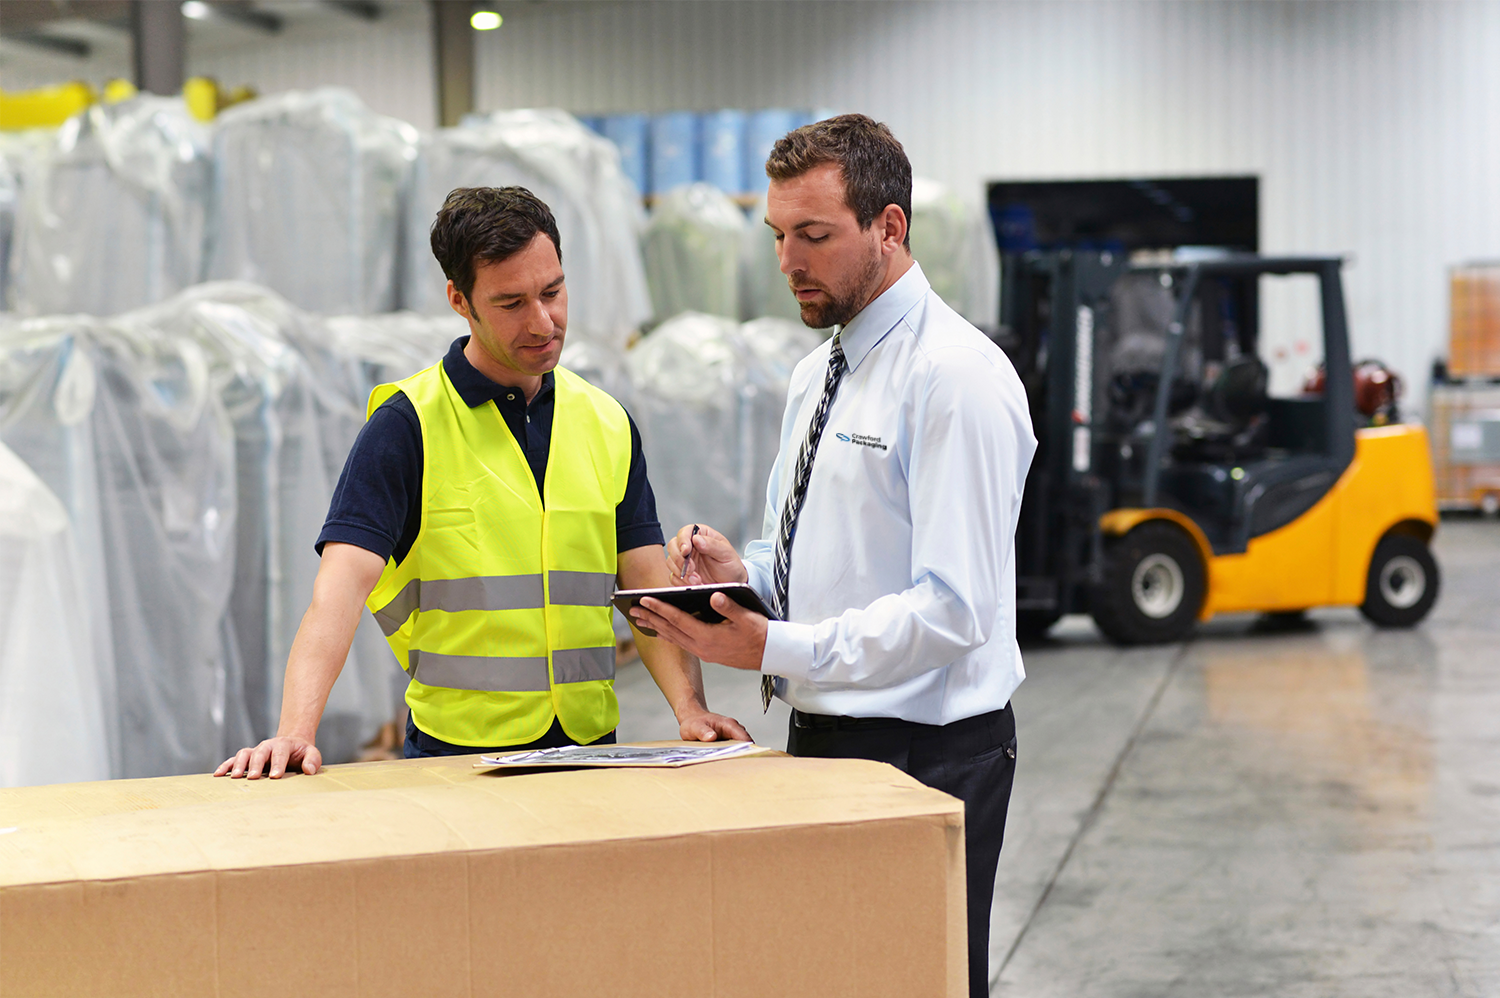 man in reflective yellow vest standing next to man with clipboard in warehousing facility